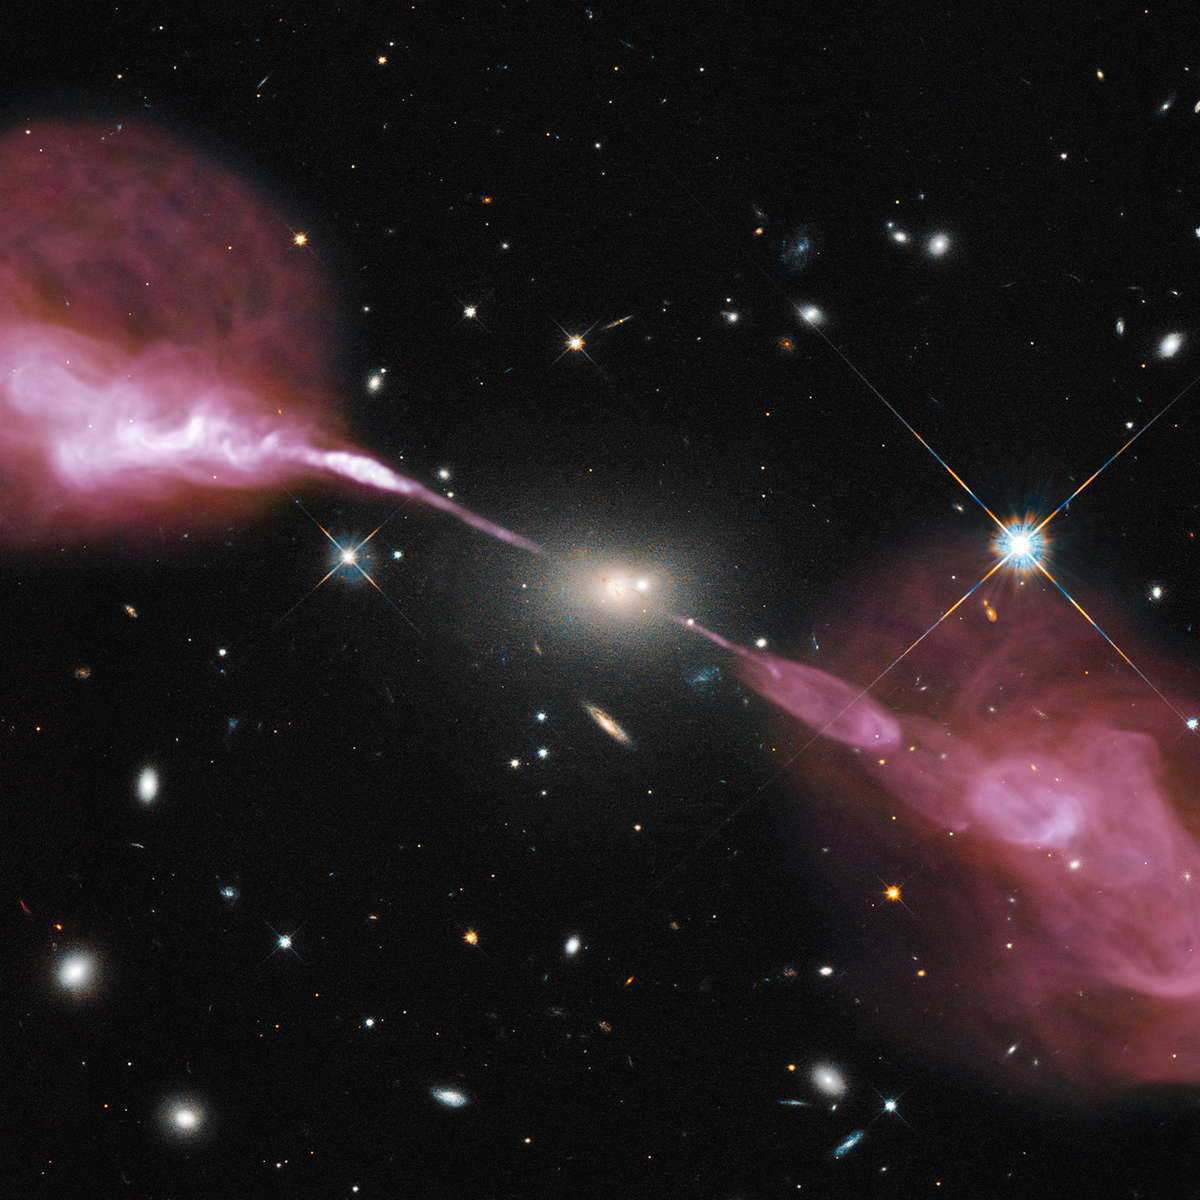 Hercules A is a relatively nearby active galaxy, with a black hole in its heart eating matter and blasting out huge amounts of radiation and matter.